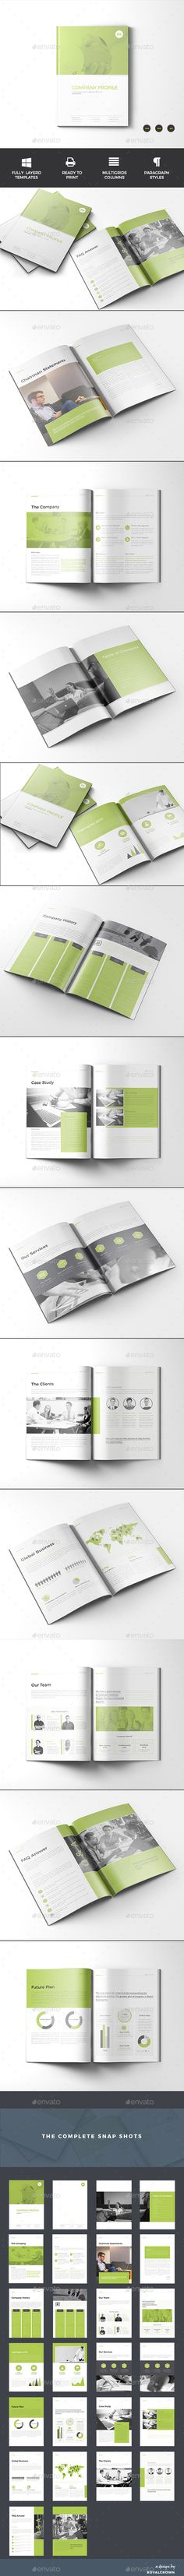 Company Profile Brochure Template InDesign INDD. Download here: https://graphicriver.net/item/company-profile/17493837?ref=ksioks